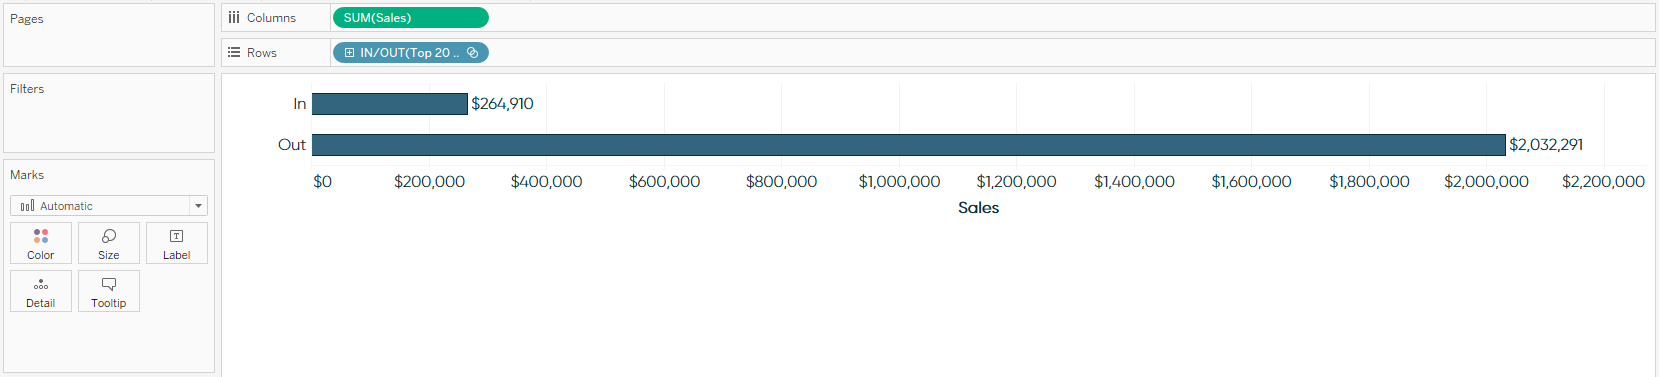 Sales by In or Out of Tableau Set